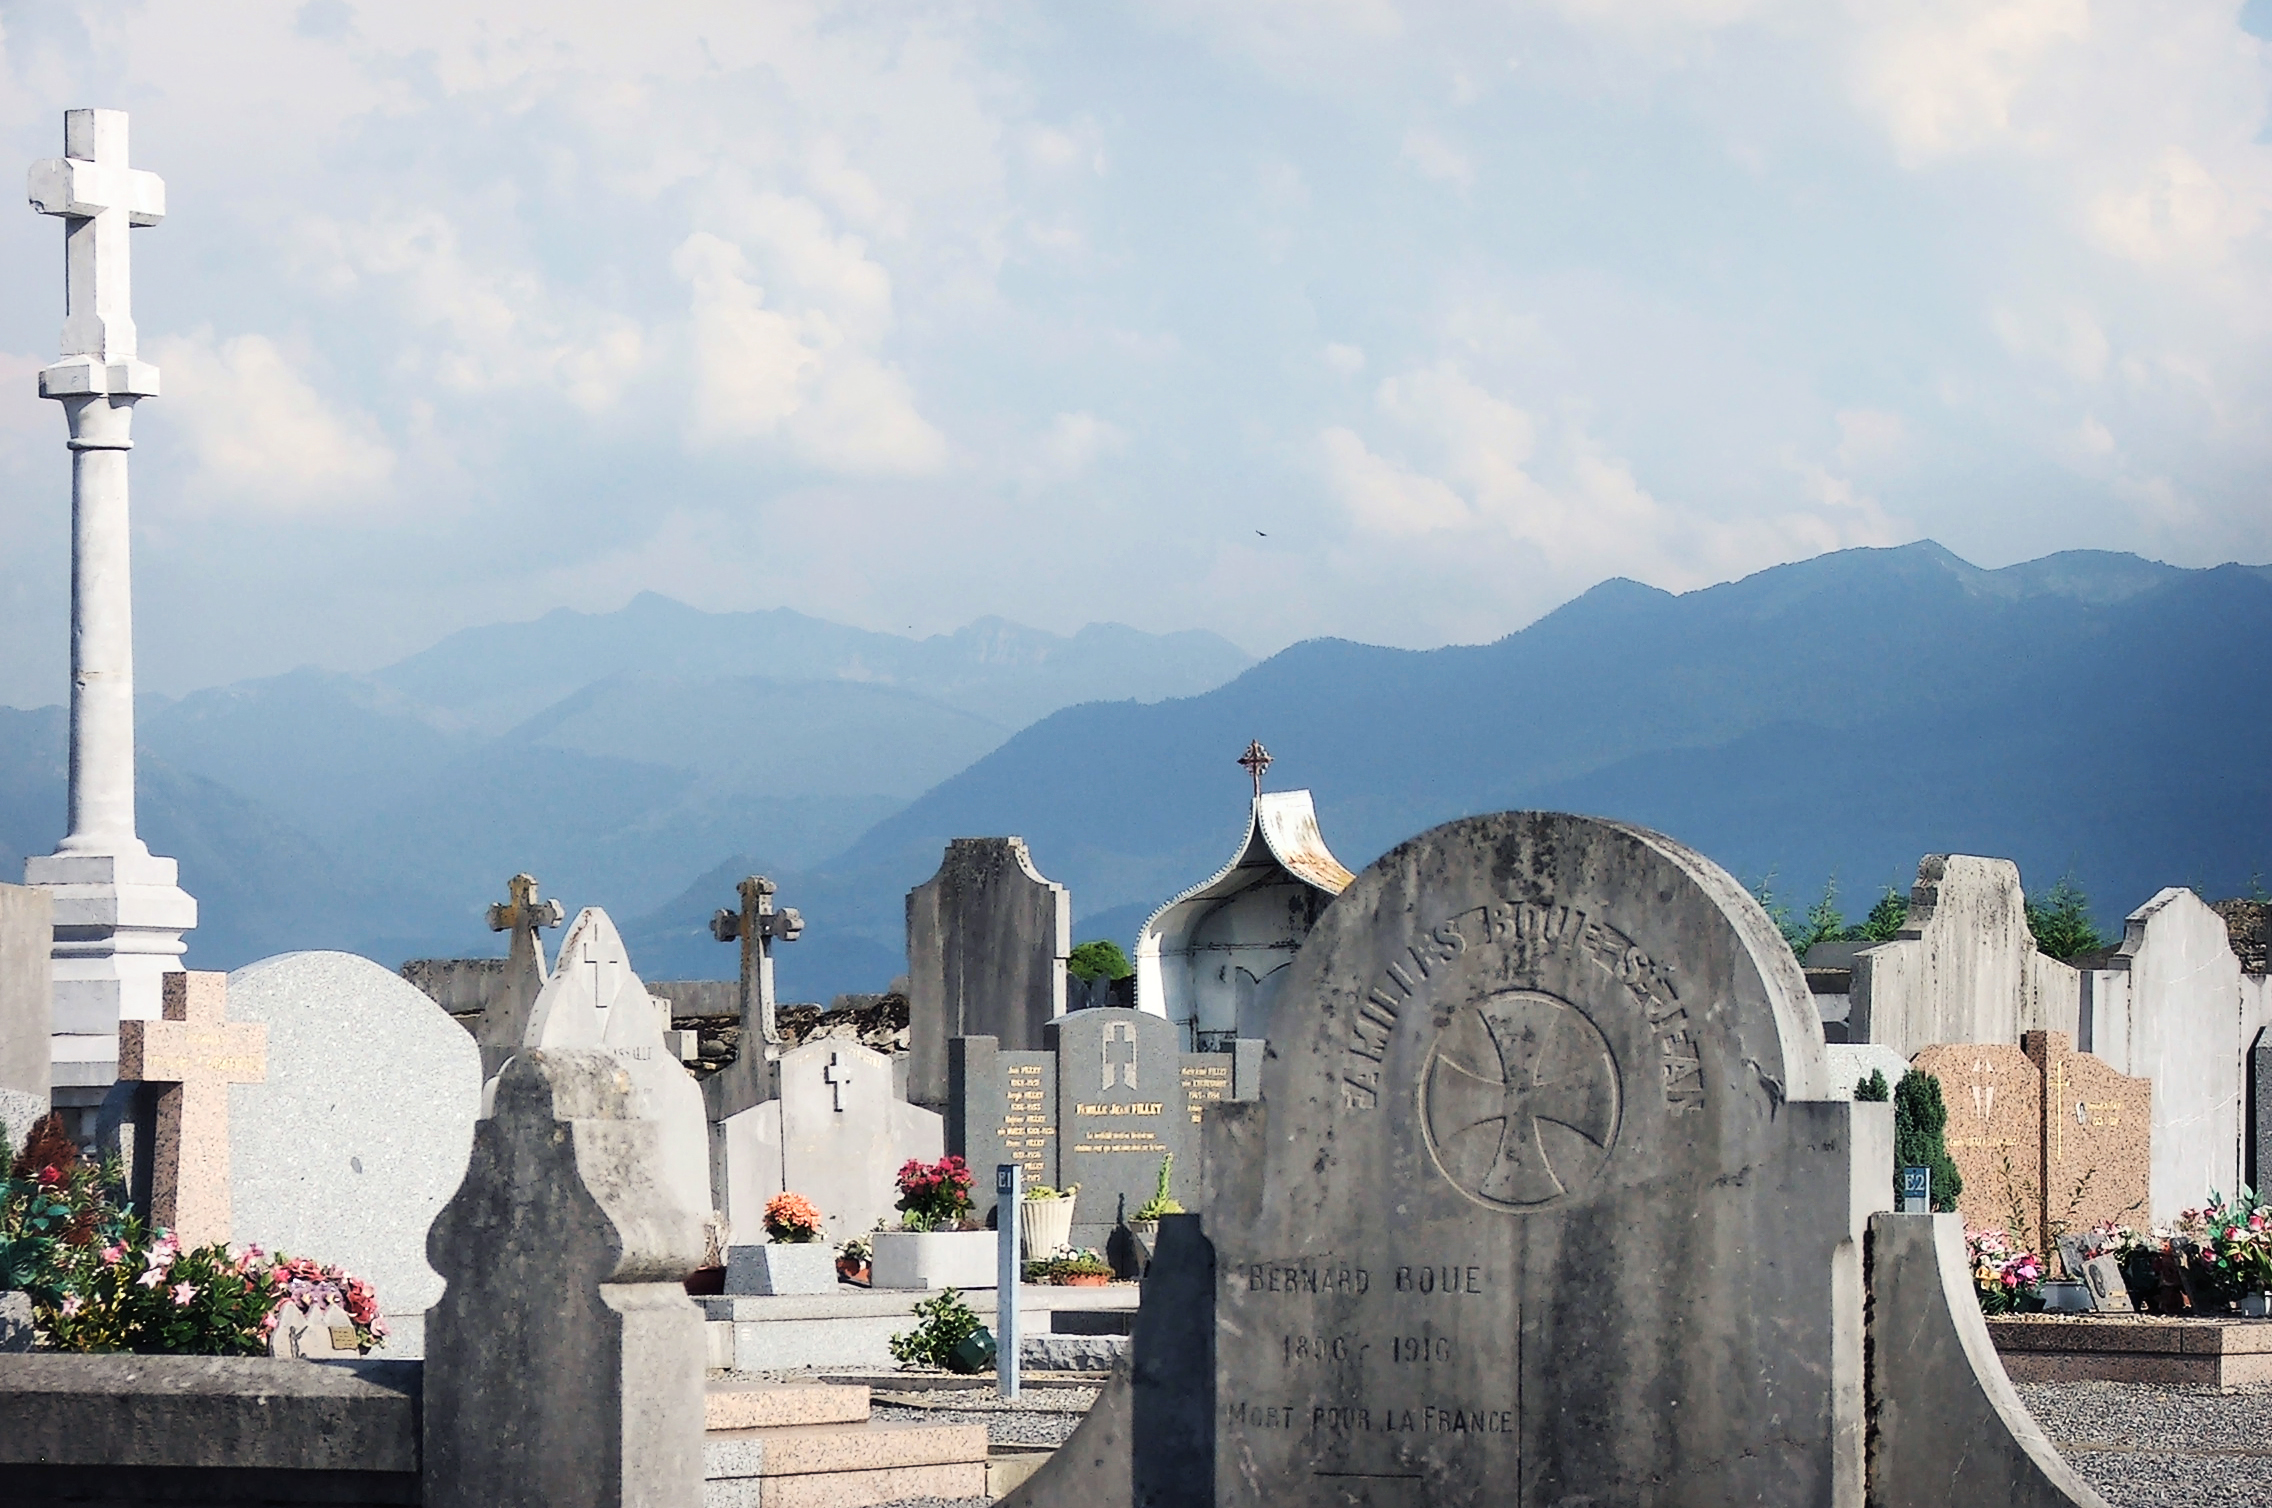 Graveyard and mountains, Beautiful, Cemetery, Clouds, Dead, HQ Photo